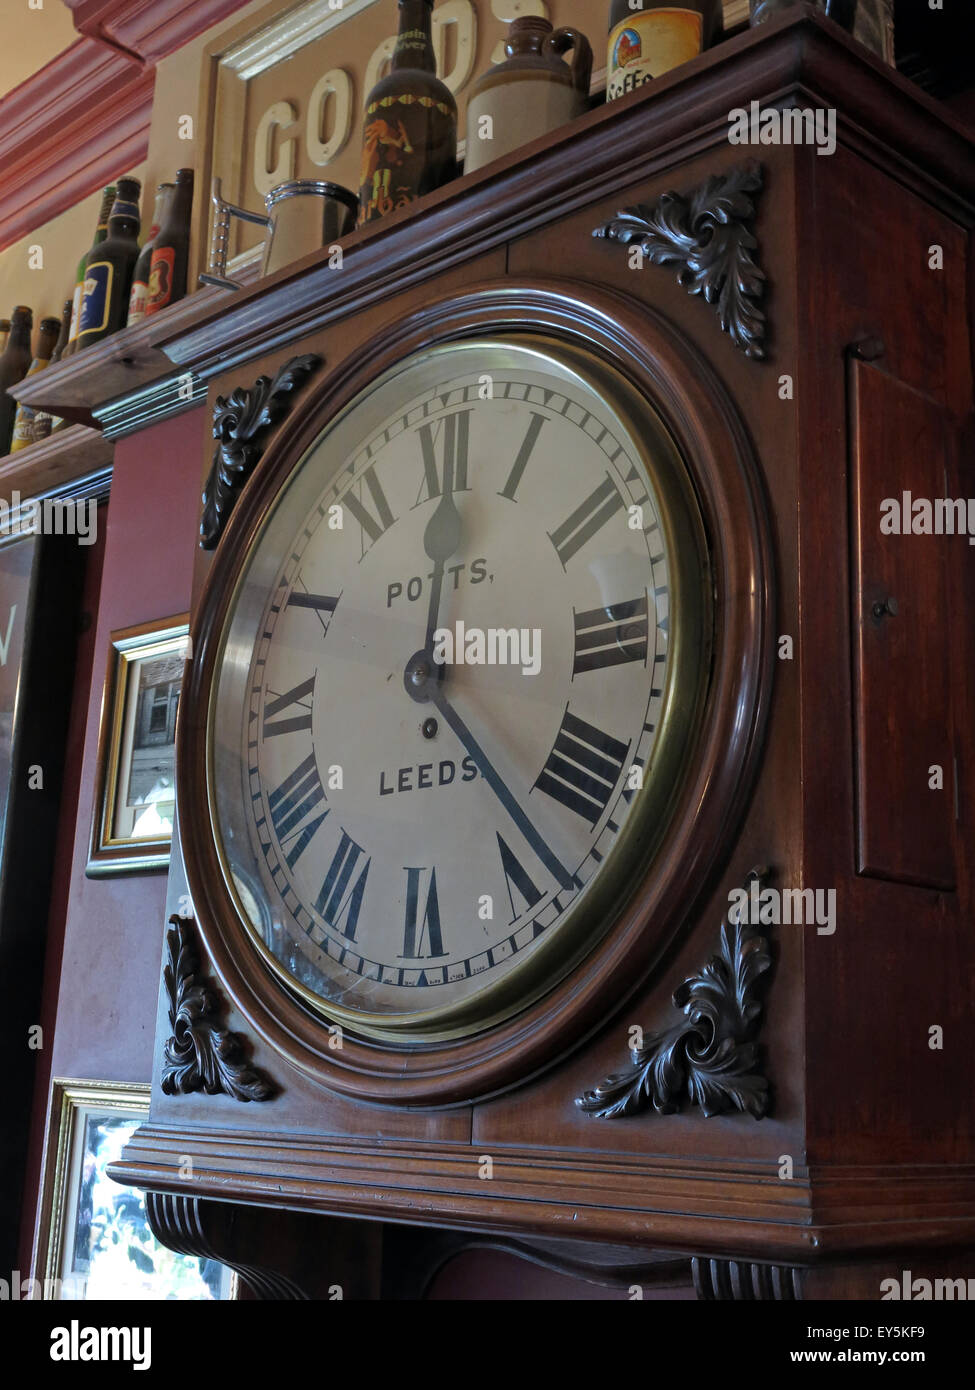 West Riding Pub, Dewsbury Railway Station, West Yorkshire, England, UK - Potts Timepiece - Stock Image